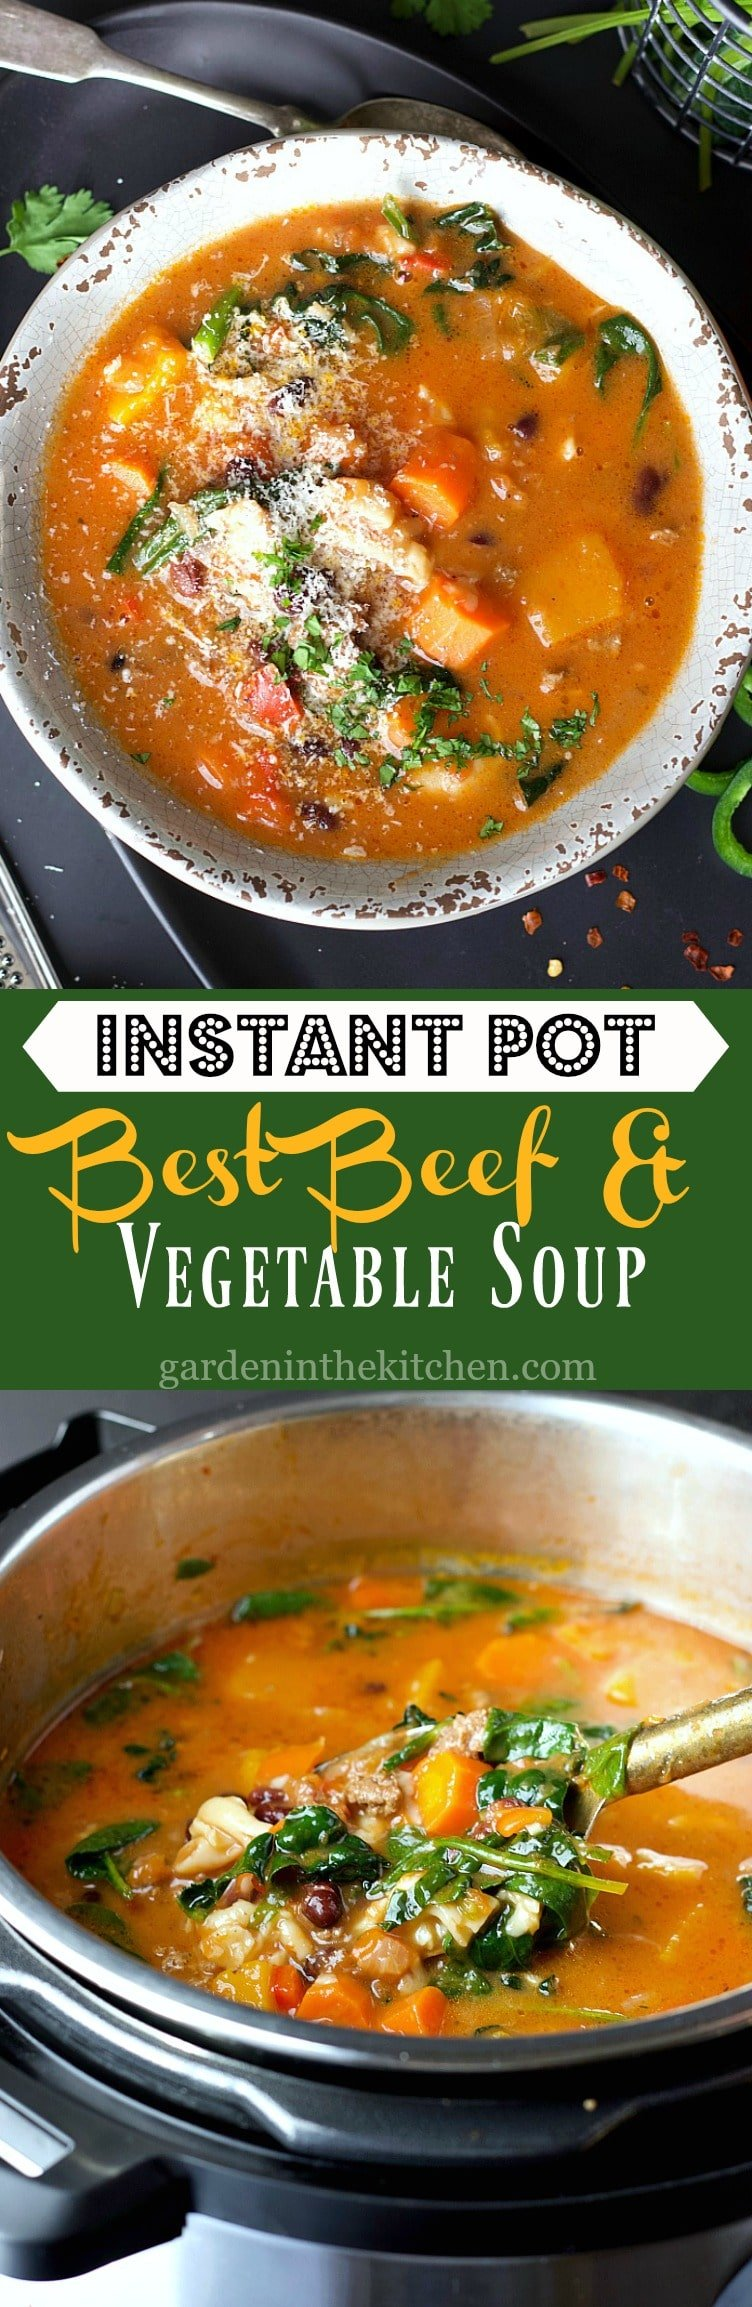 This Instant Pot Beef and Vegetable Soup packs in all the protein, carbs, vegetables and greens, all in one comforting bowl of soup!